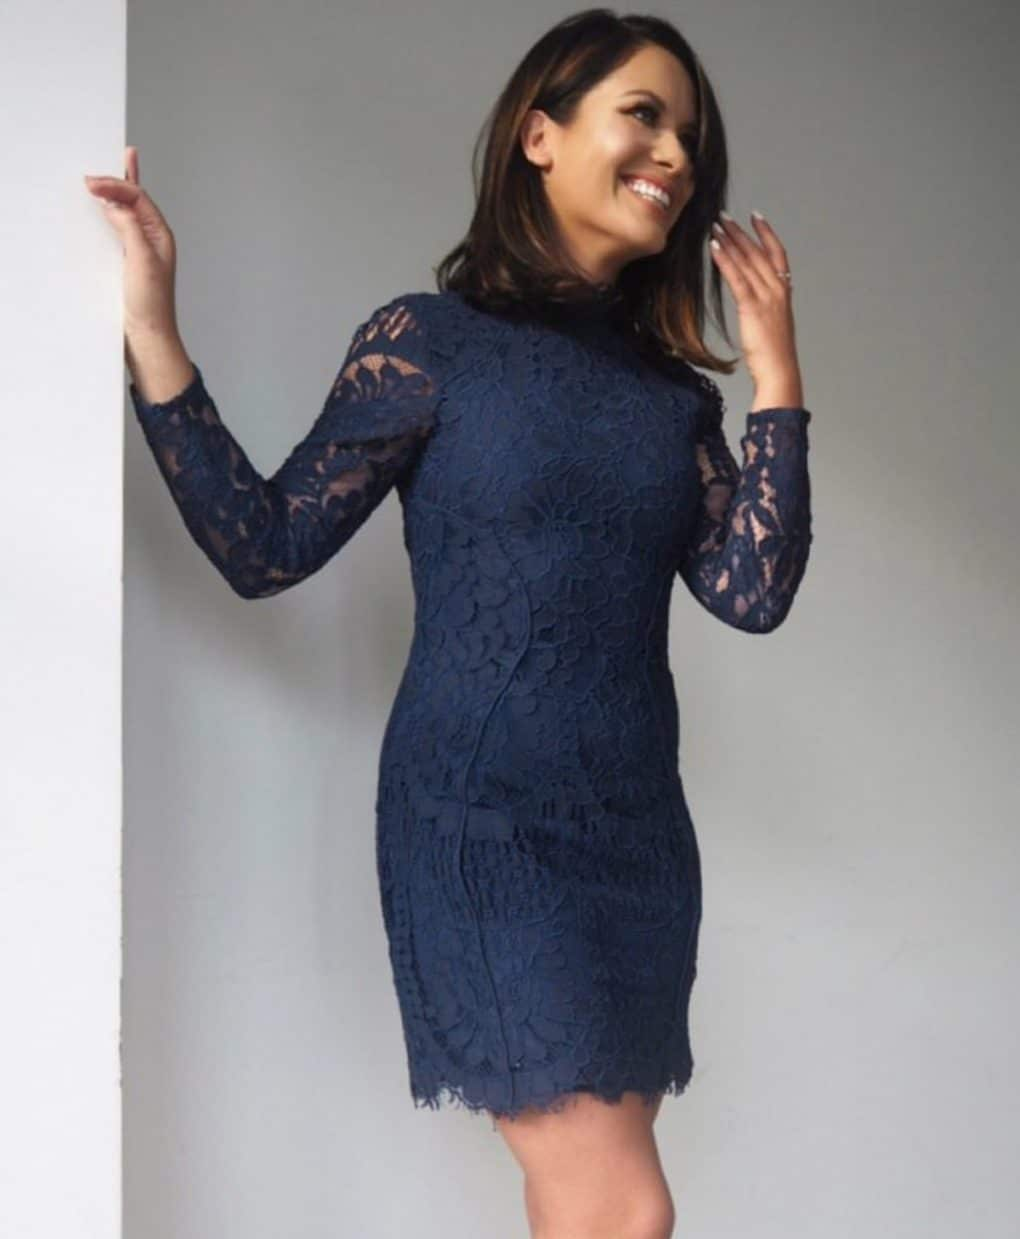 Lumier-By-Bariano-Navy-Lace-Long-Sleeved-Dress-Ireland-Am-Alila